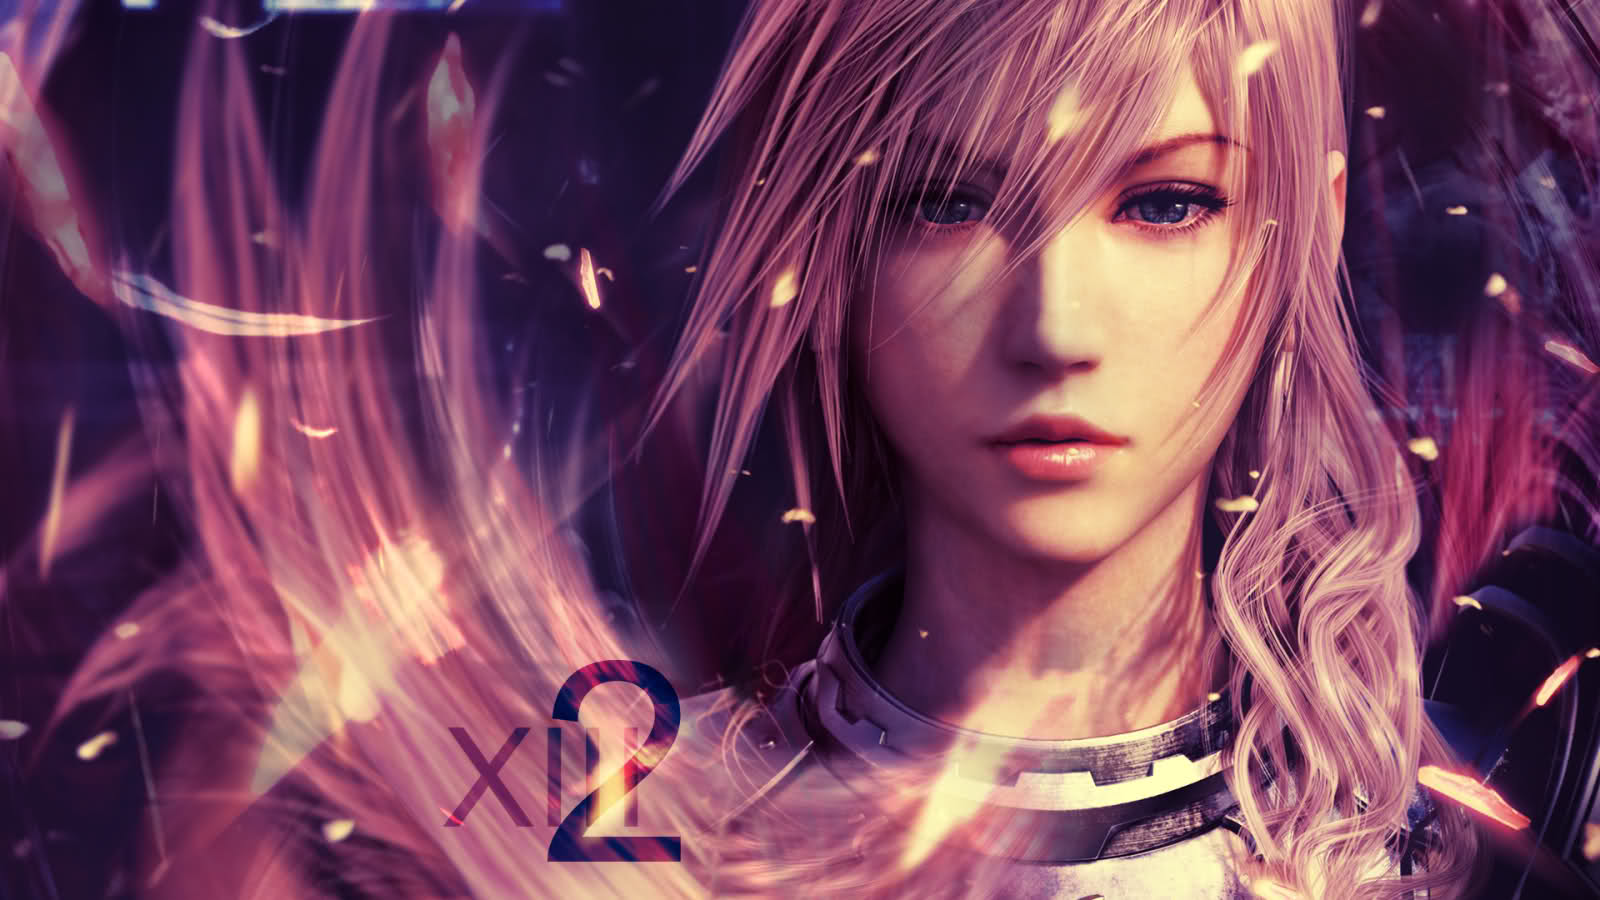 Final fantasy xiii 2 wallpaper and background image 1600x900 id video game final fantasy xiii 2 final fantasy lightning final fantasy wallpaper voltagebd Gallery